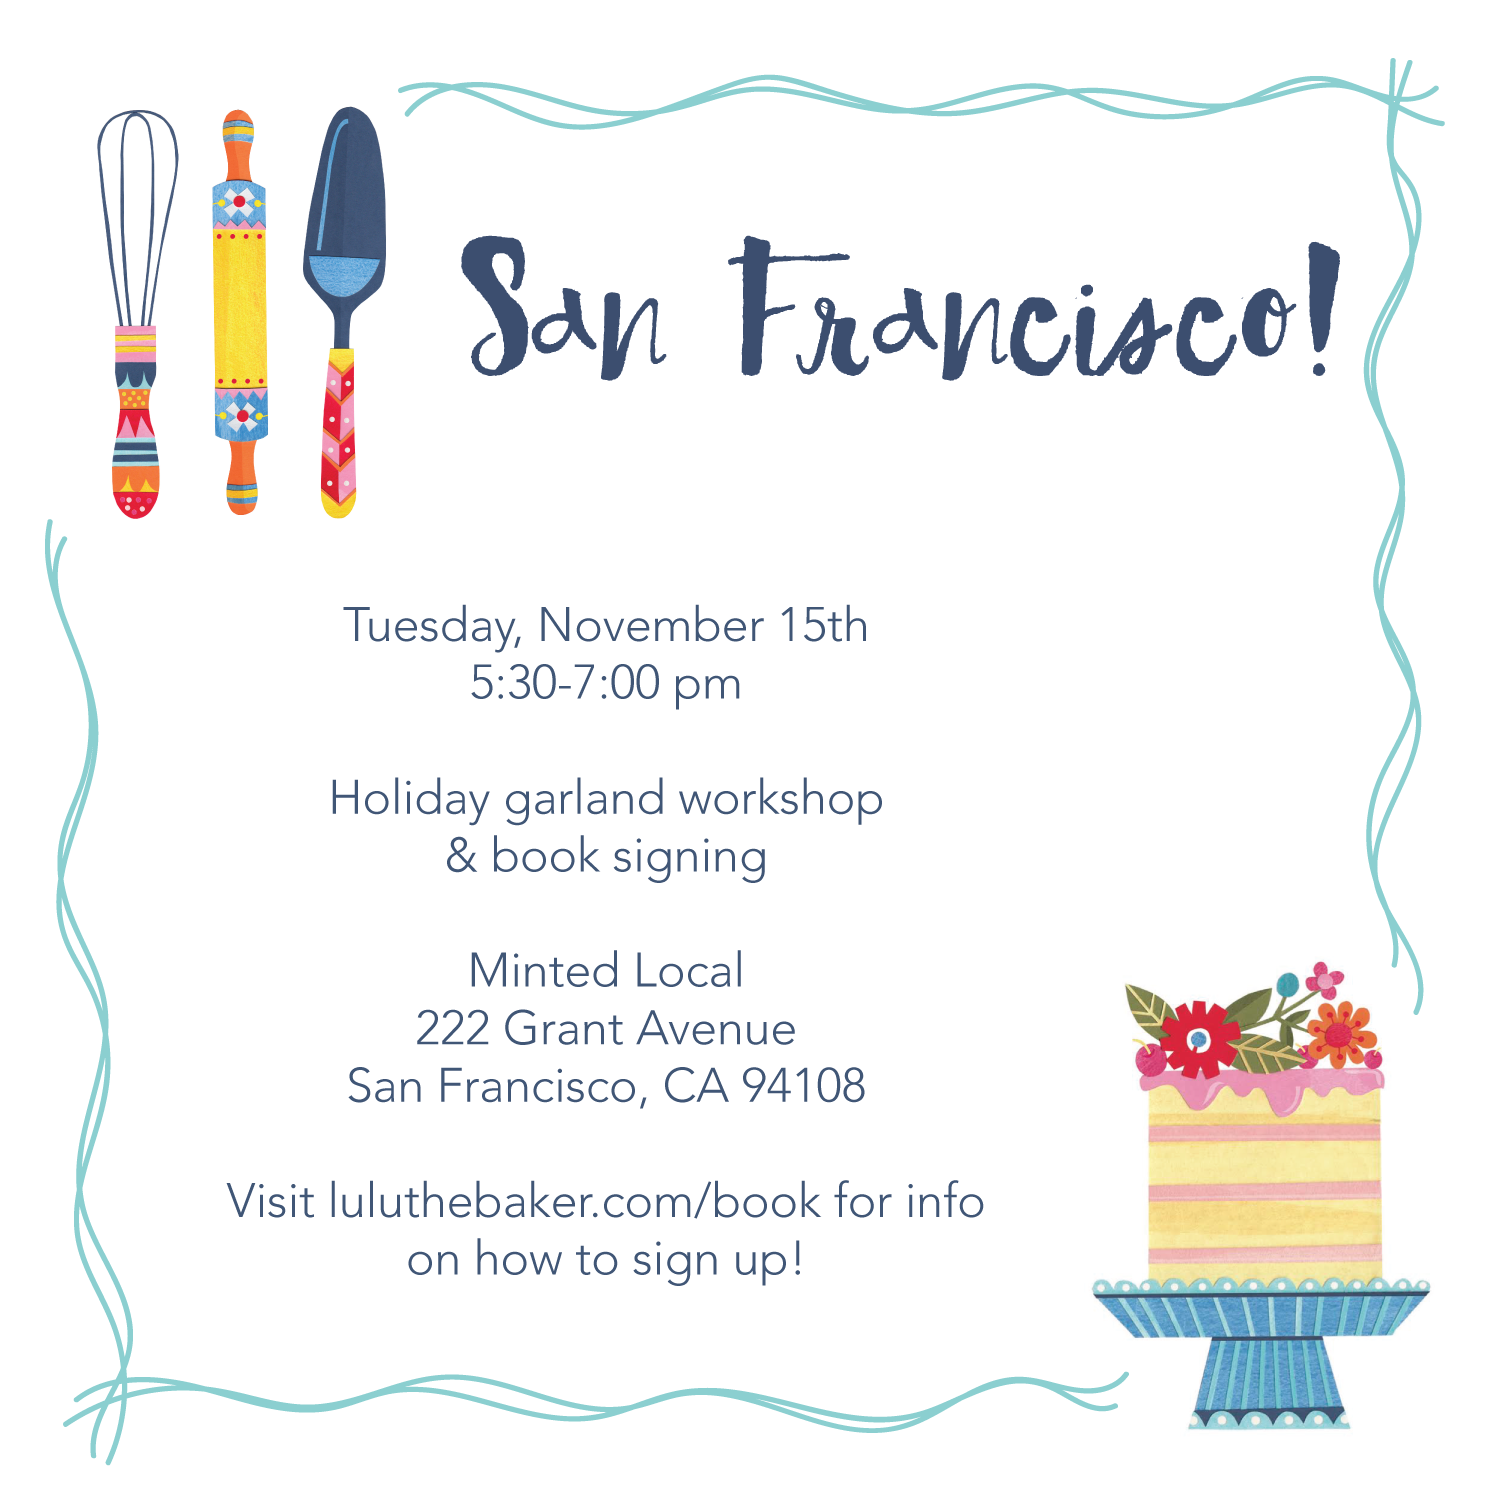 Scandinavian Gatherings book events: come make cute felt holiday garlands with me on November 15th from 5:30-7 pm at Minted Local in San Francisco!